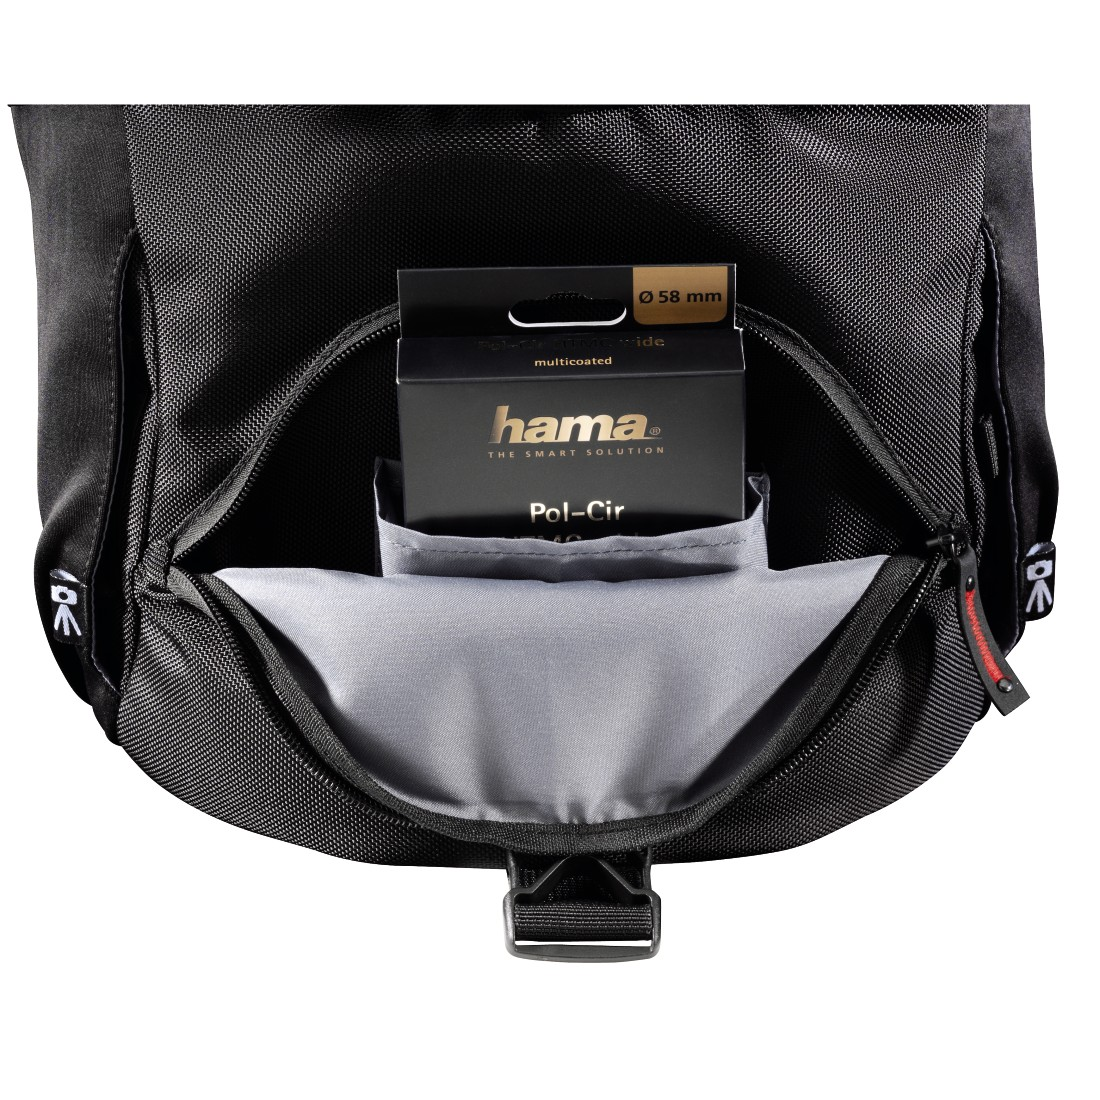 dex8 High-Res Detail 8 - Hama, Protour Camera Bag, 200, black